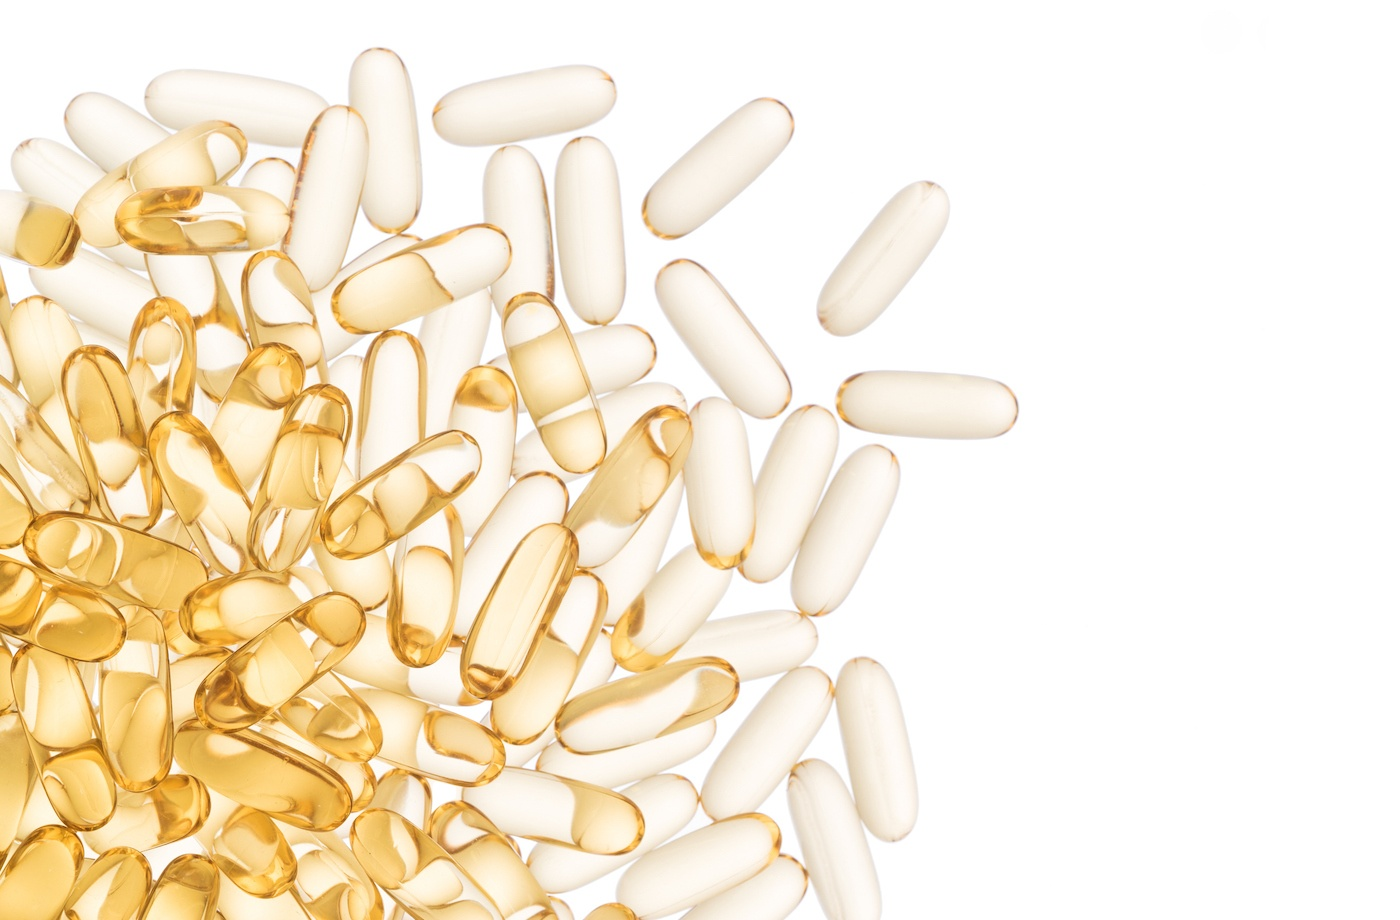 I don't understand why omega-3s are so great—so I asked 2 doctors for insight